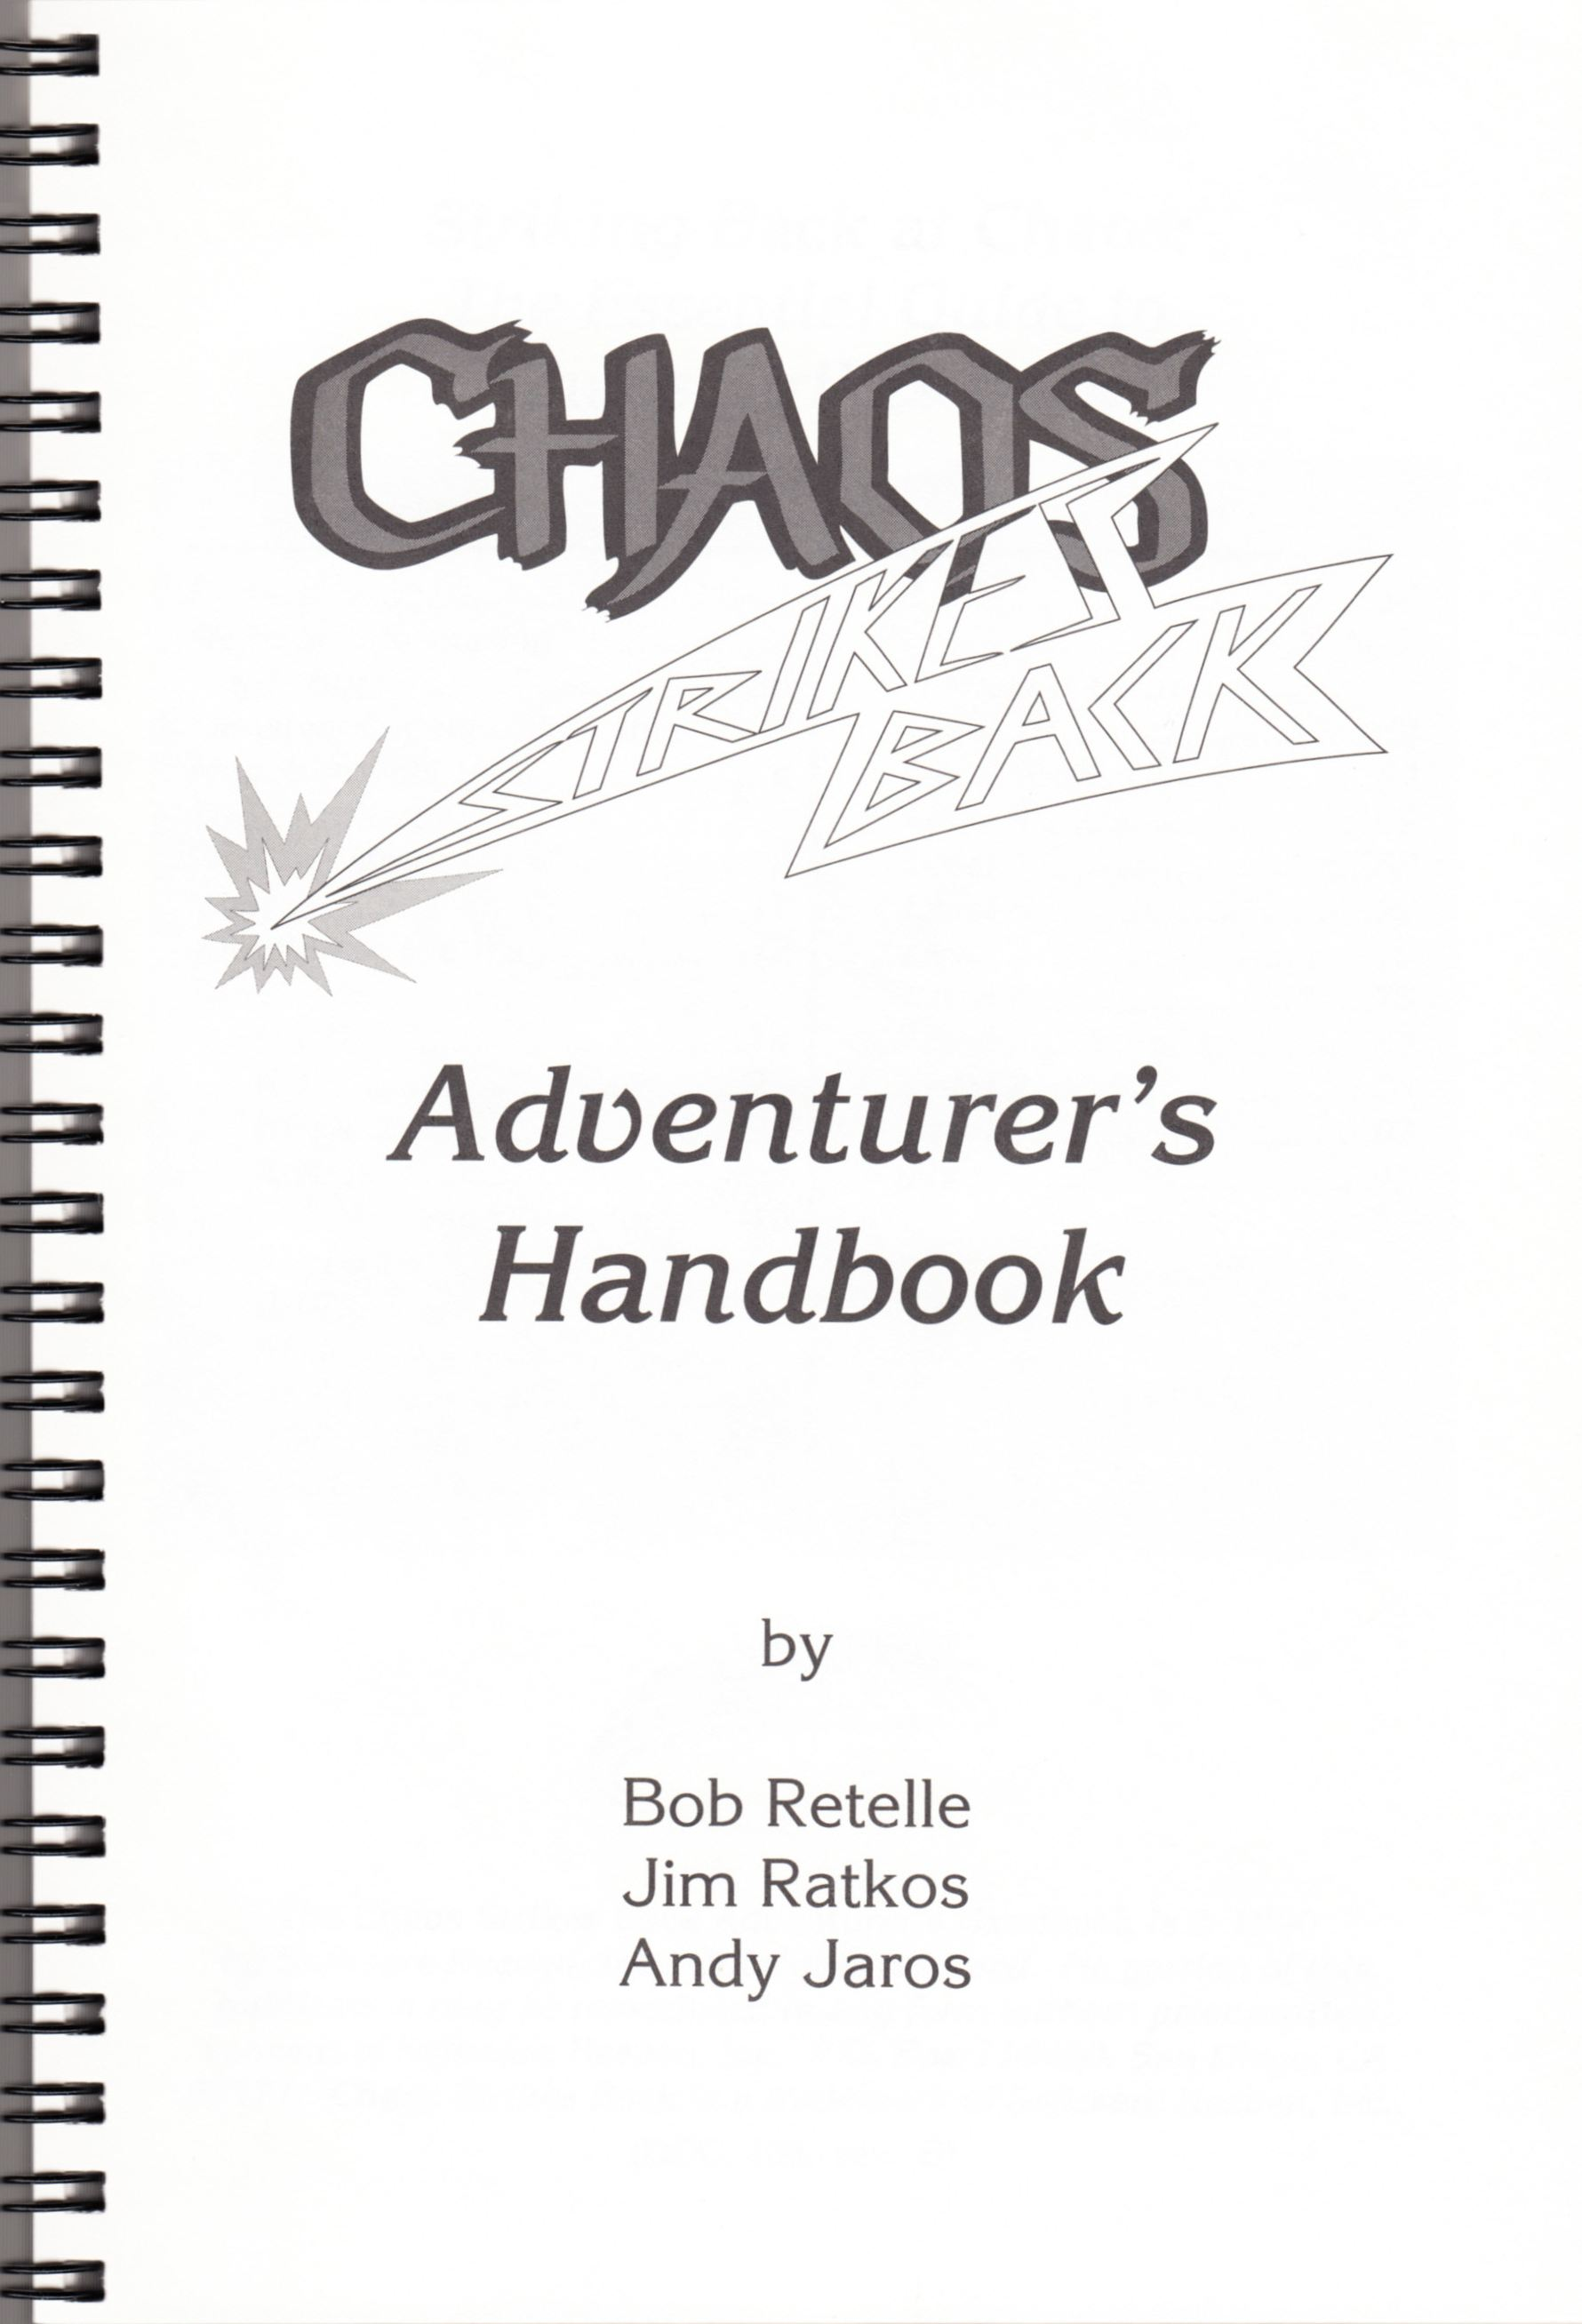 Hint Book - Chaos Strikes Back Adventurer's Handbook - US - Page 003 - Scan